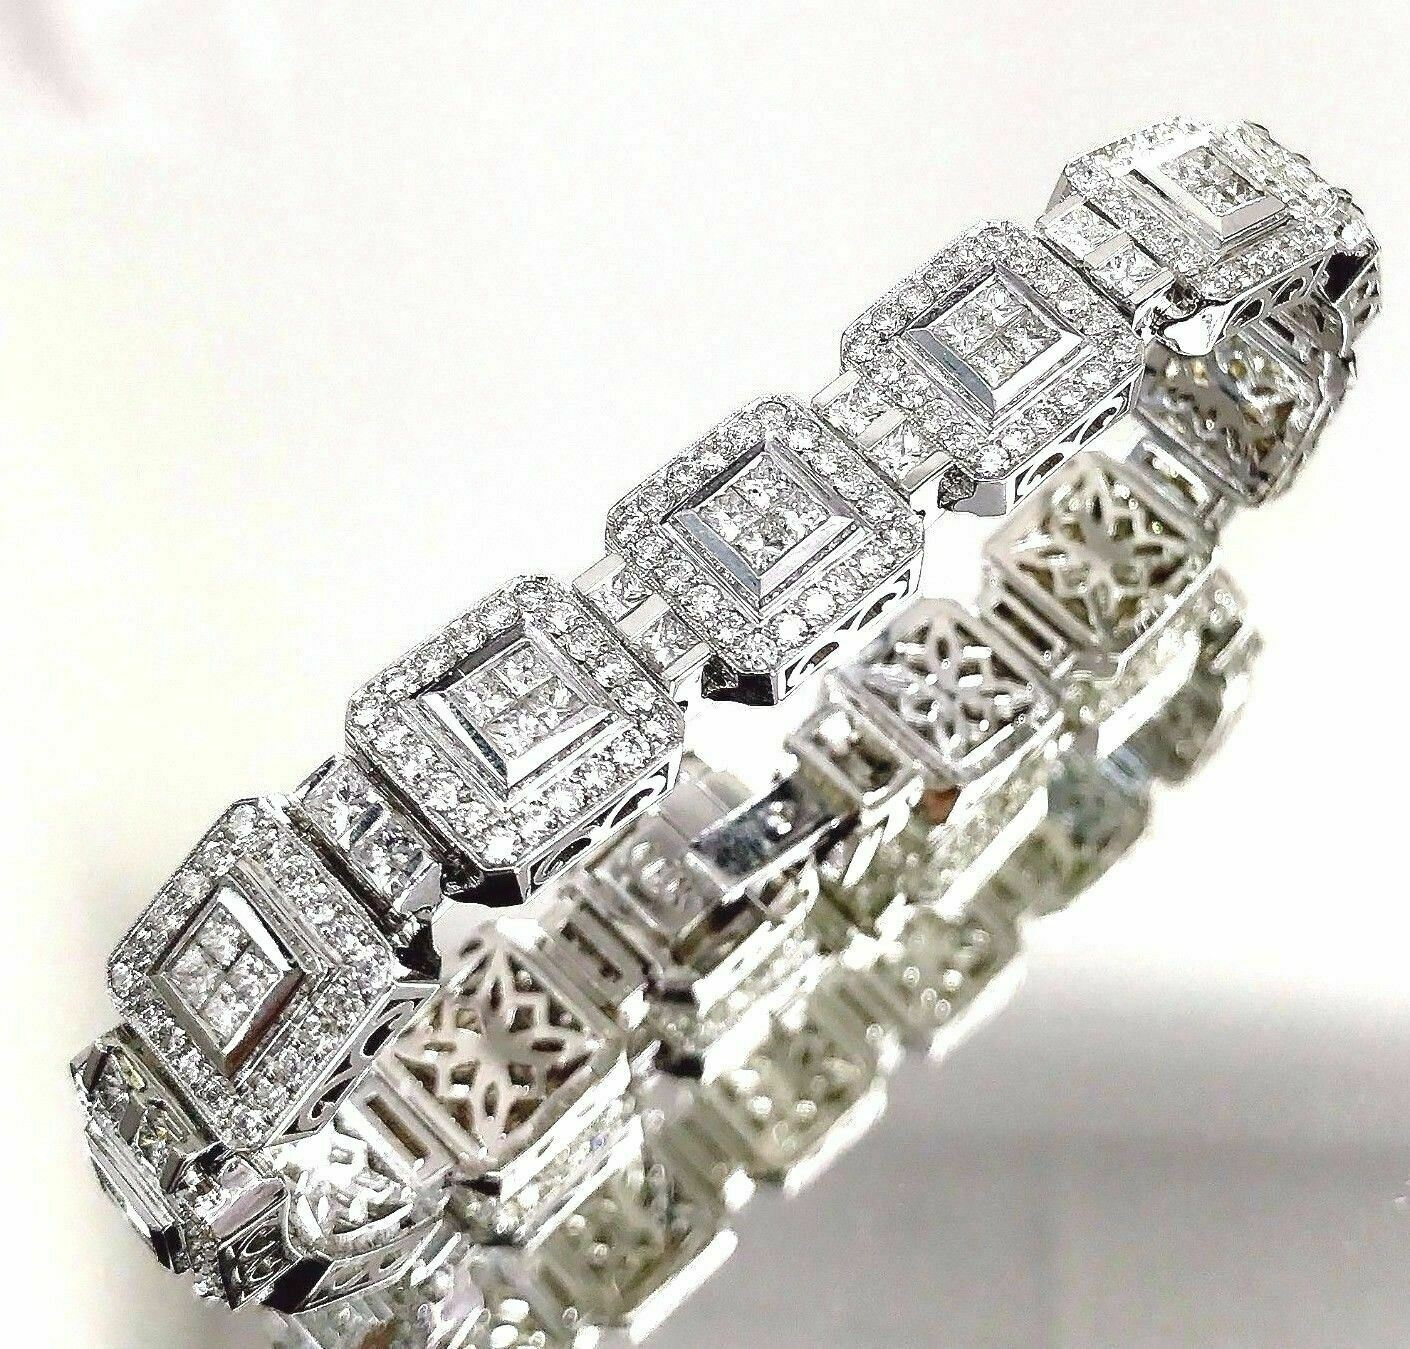 9.10 Carats t.w. Grand Diamond Tennis Bracelet G VS Diamonds 18K Gold 51 Grams